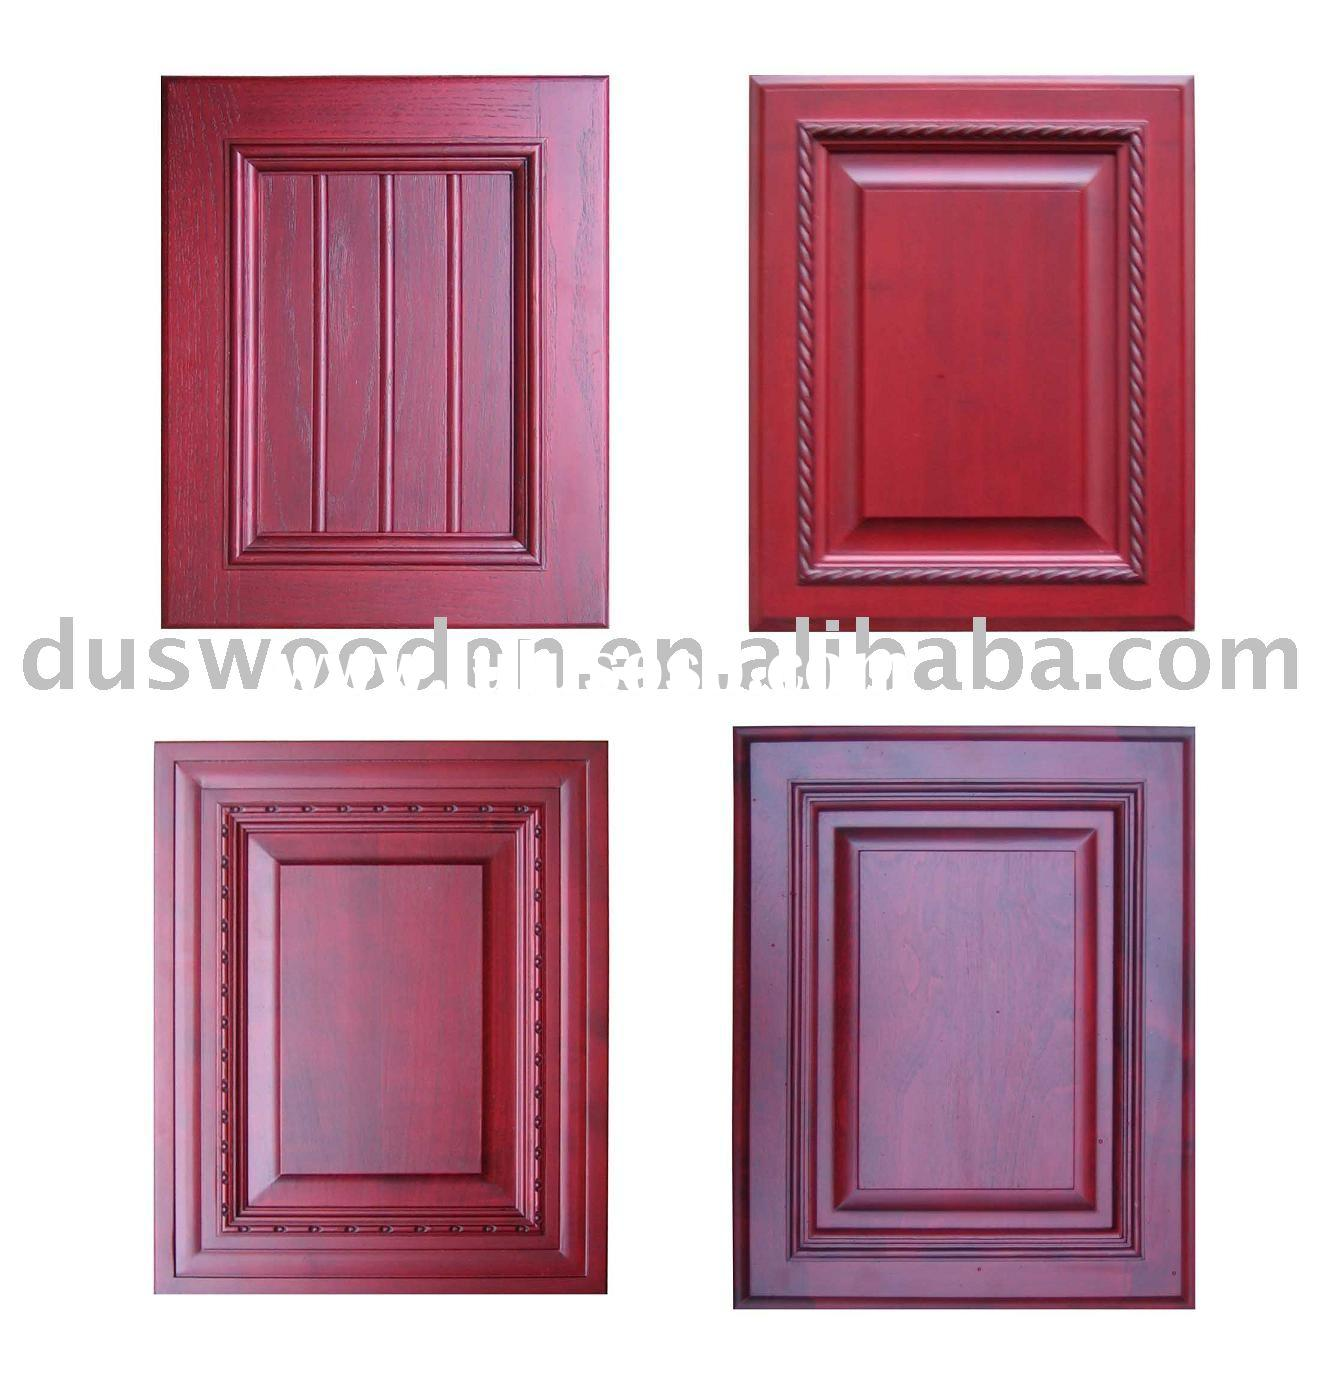 Custom Kitchen Cabinet Doors | Replacement Cabinet Doors